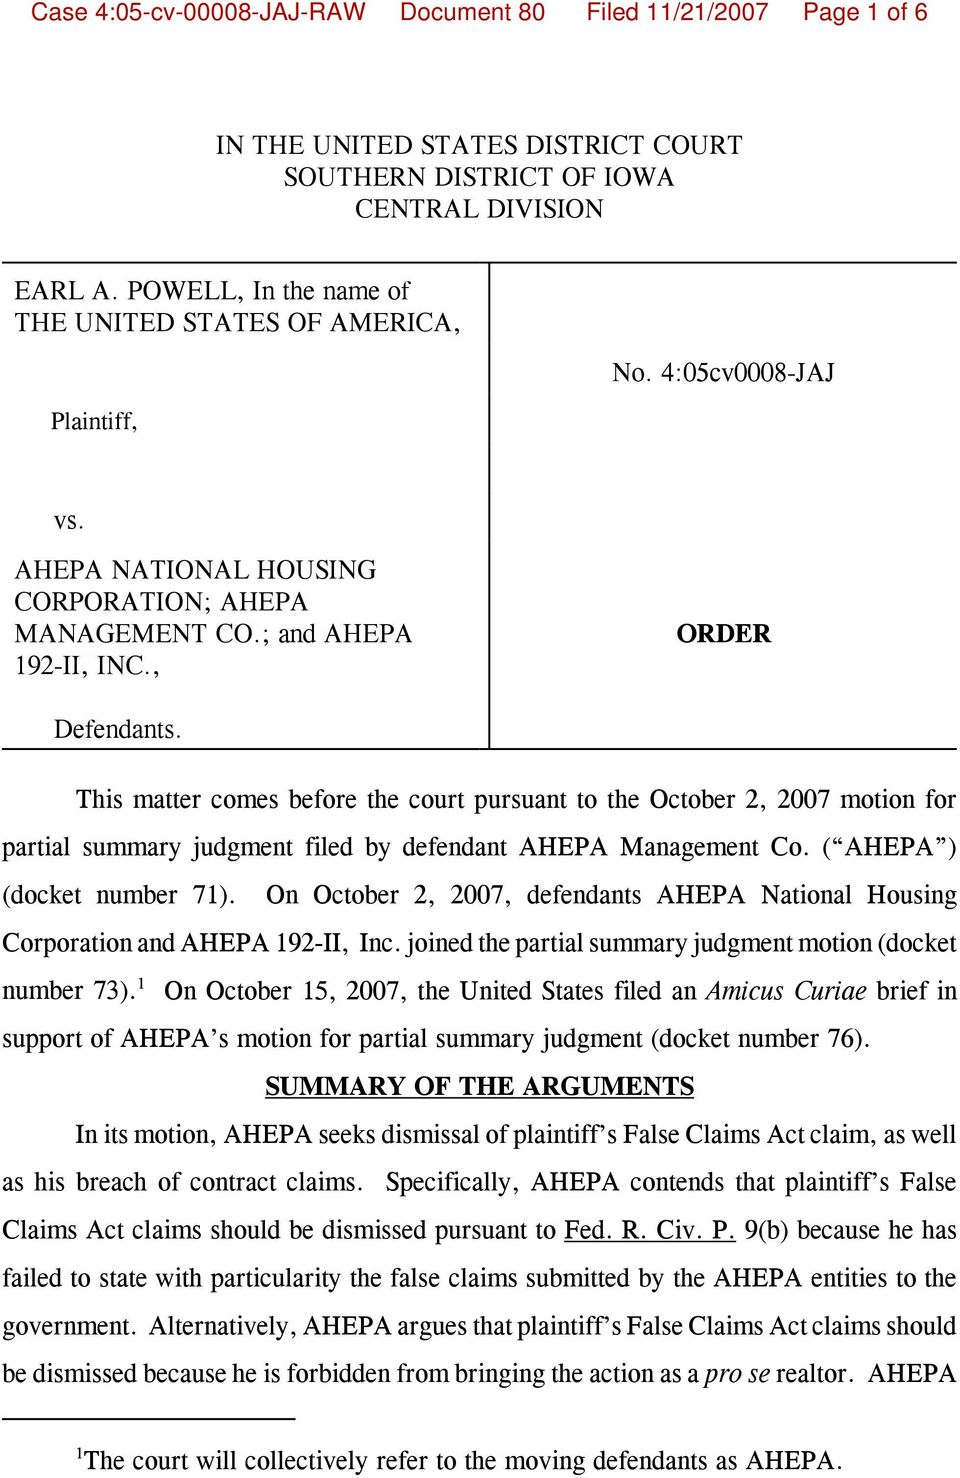 This matter comes before the court pursuant to the October 2, 2007 motion for partial summary judgment filed by defendant AHEPA Management Co. ( AHEPA ) (docket number 71).